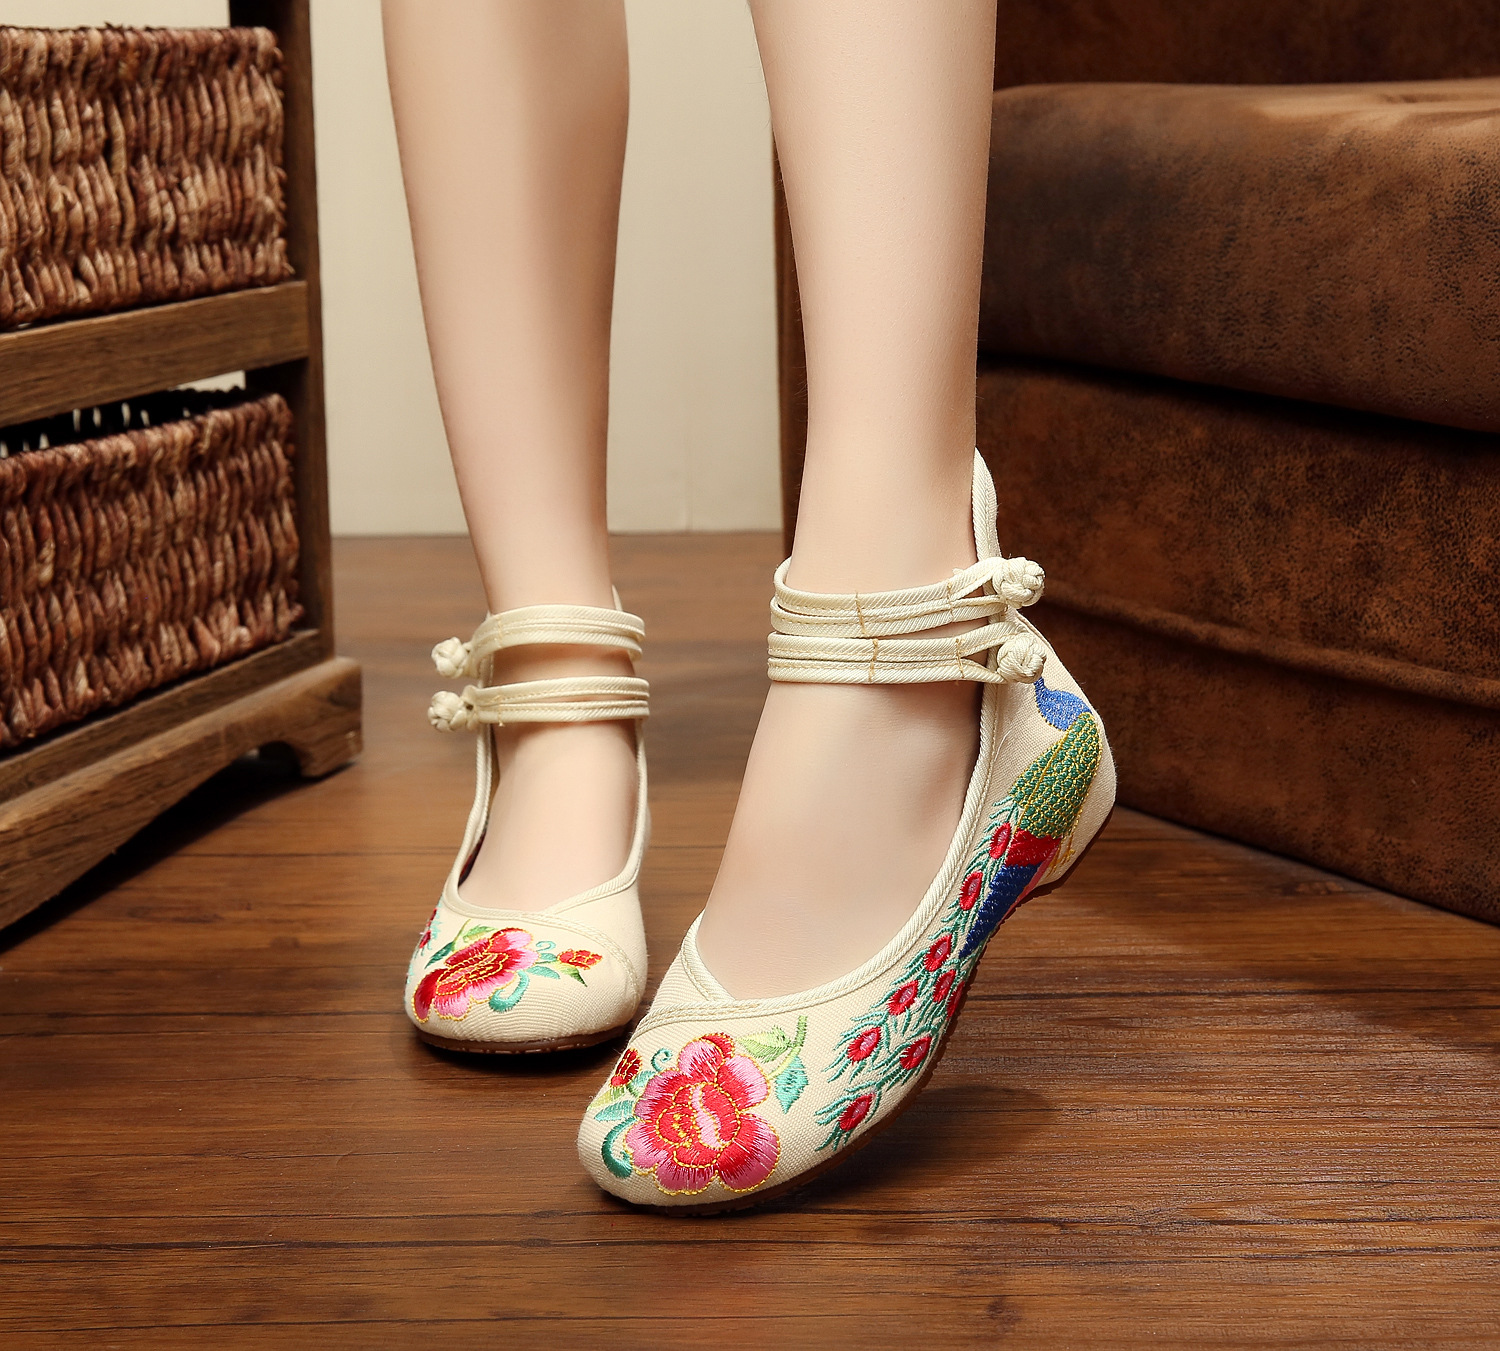 29 Colors Fashion Women's Shoes Old Peking Mary Jane Flat Heel Denim Flats with Embroidery Soft Sole Casual Shoes Plus Size 41